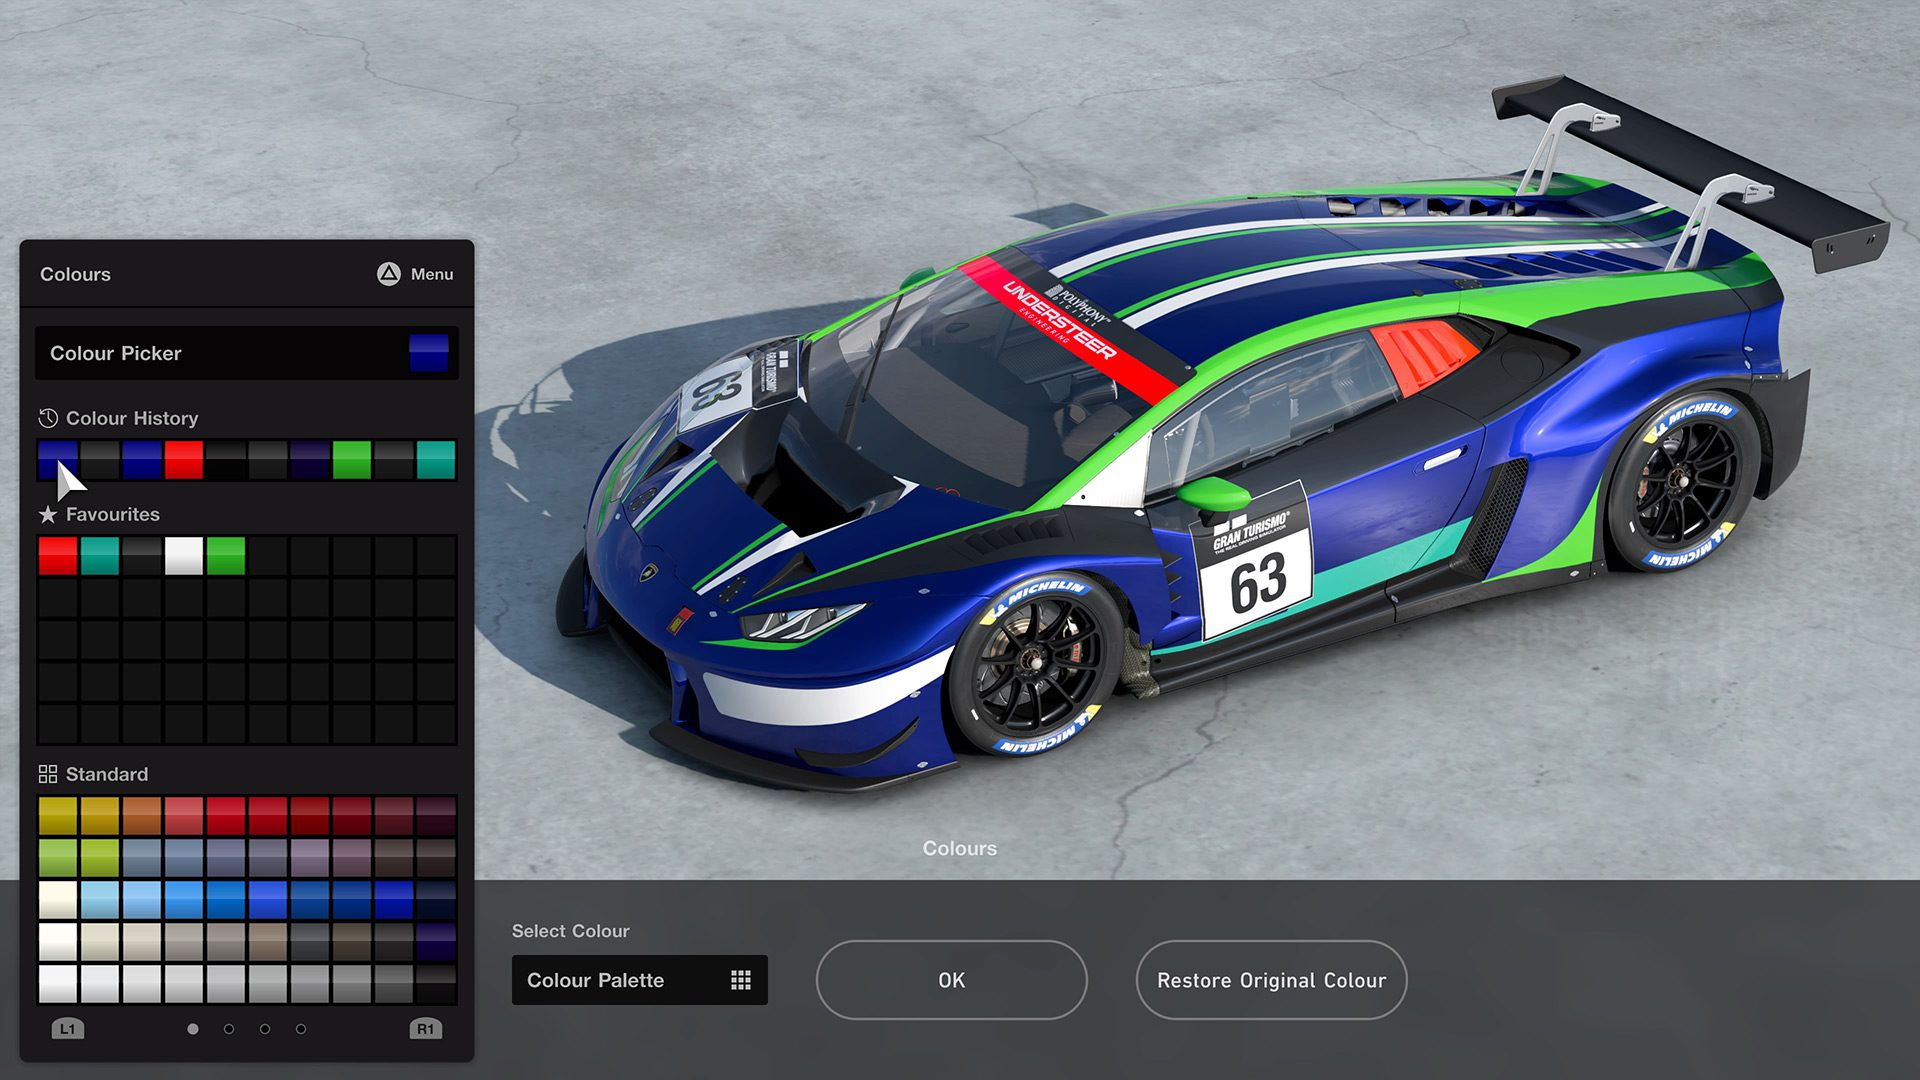 Livery Editor is a new feature in GT7